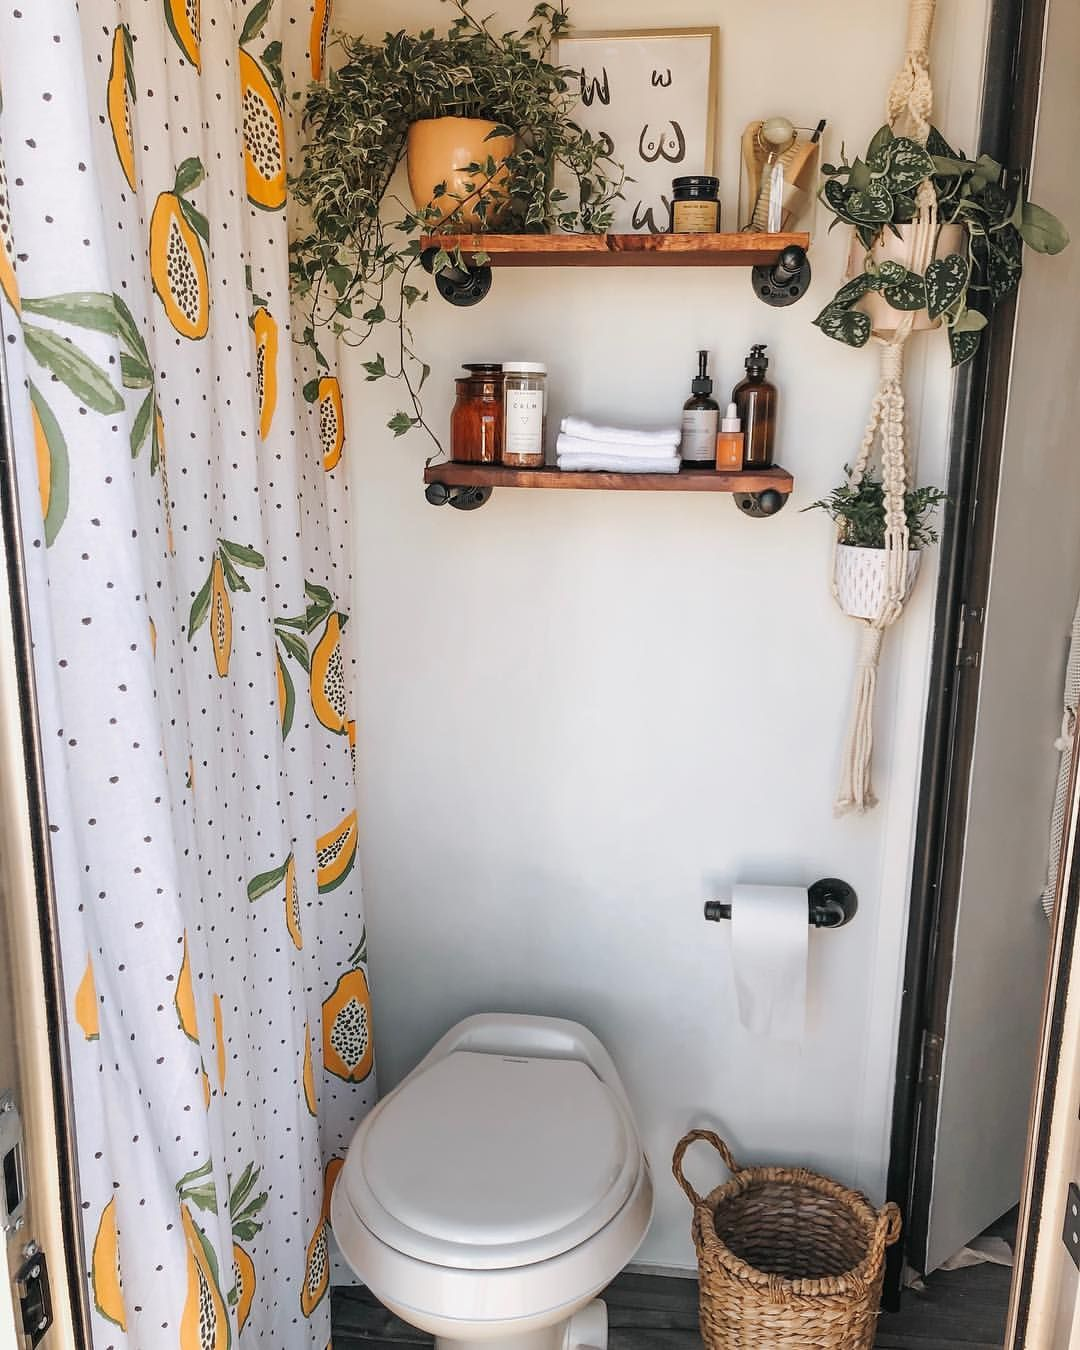 What S It Like Having A 12 Sq Ft Bathroom Well To Be Honest It S Something I Never Thought I D Be Living With But That Does Home Decor Room Decor Interior